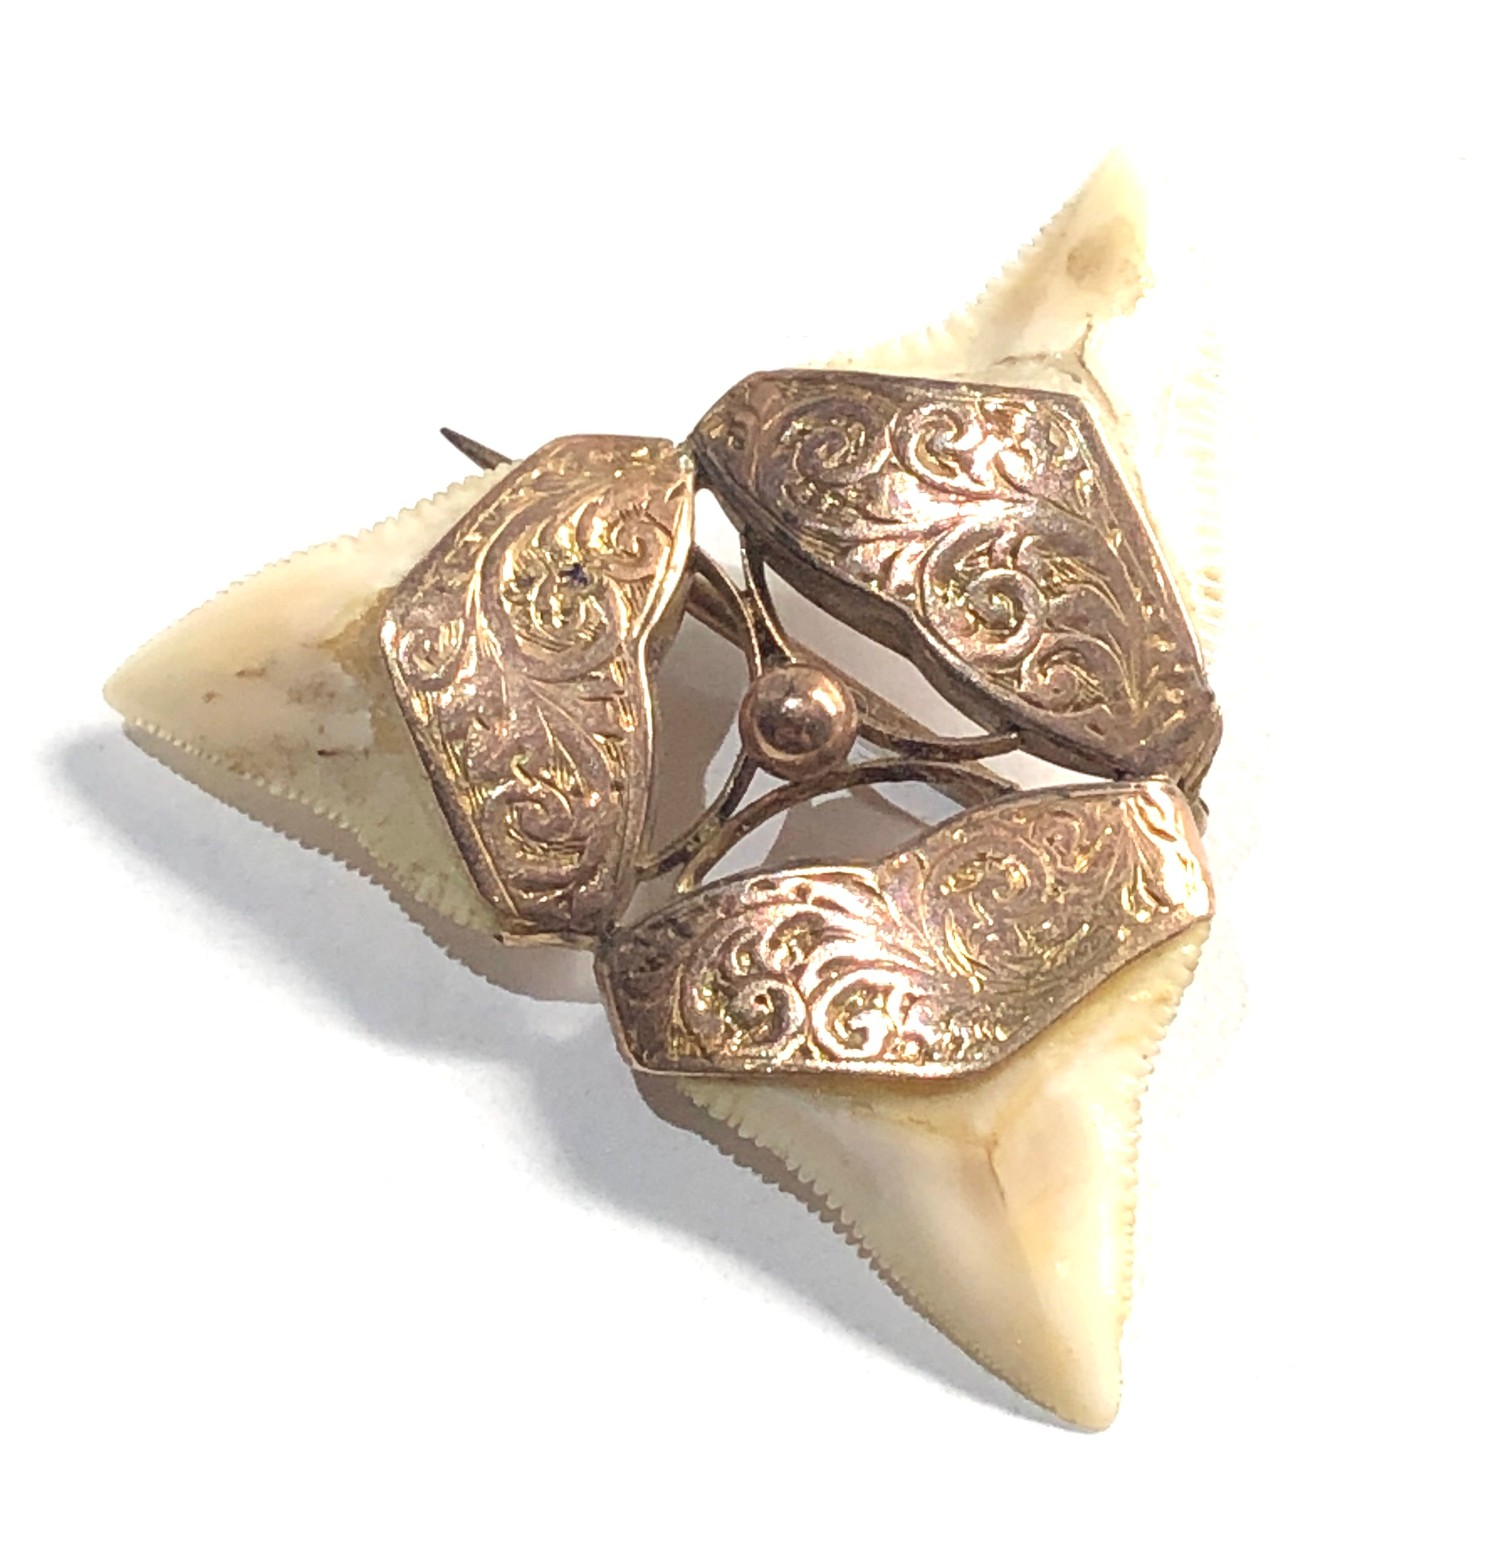 9ct Gold ornate detail shark tooth brooch